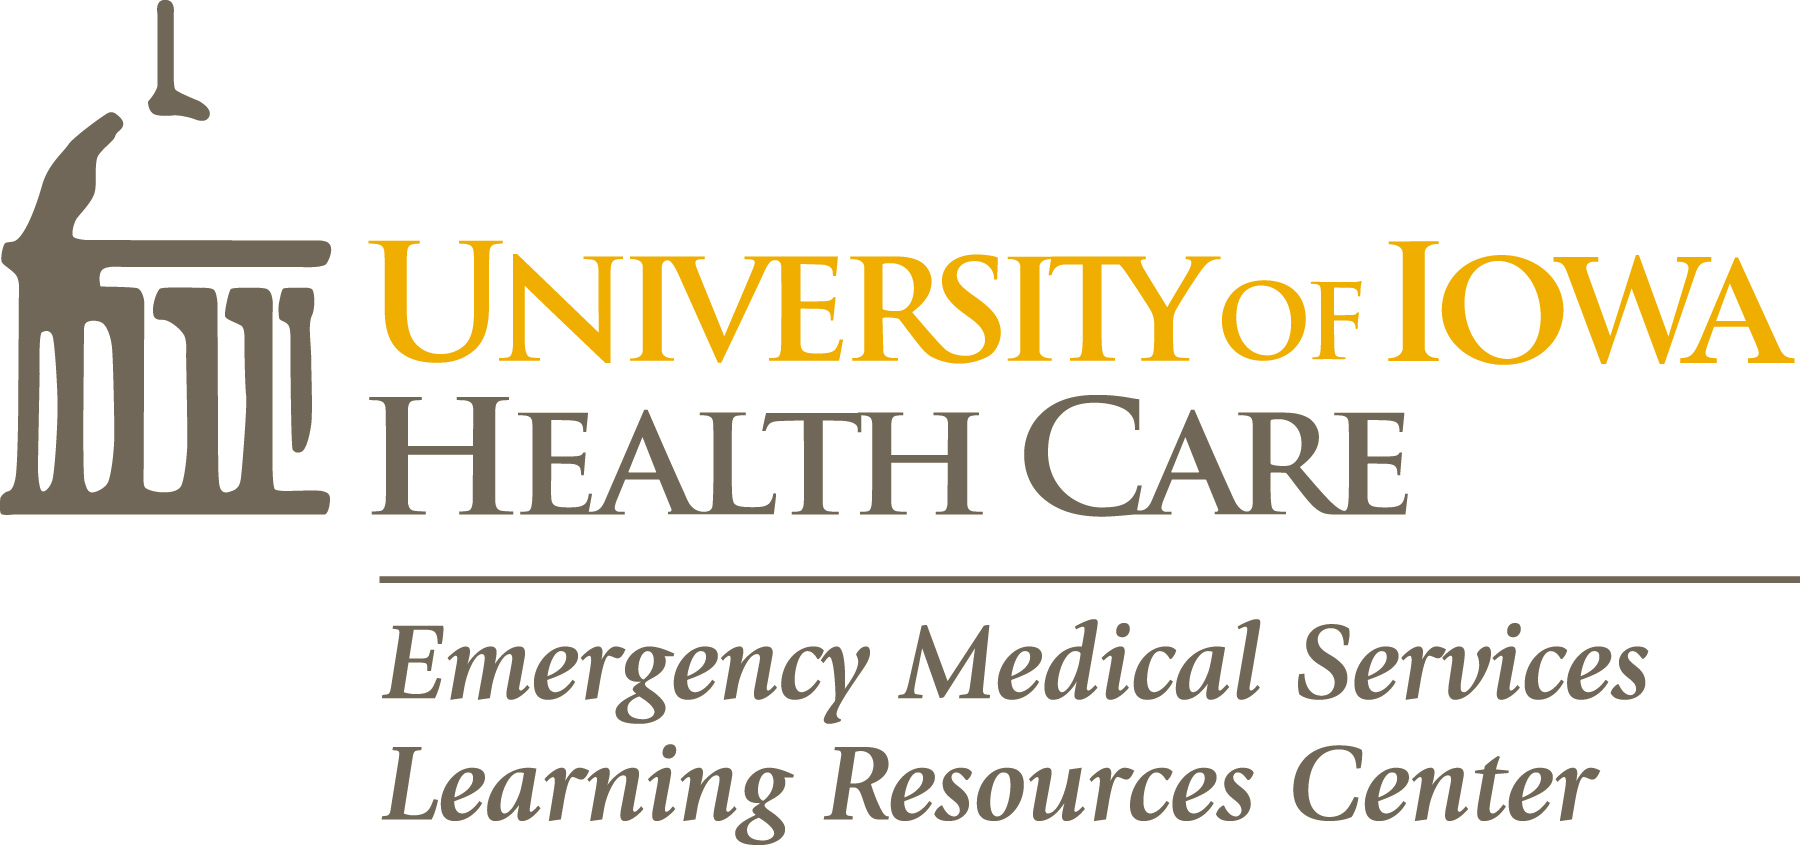 Emergency Nursing Pediatric Course (ENPC) Provider September 21 & 22, 2017